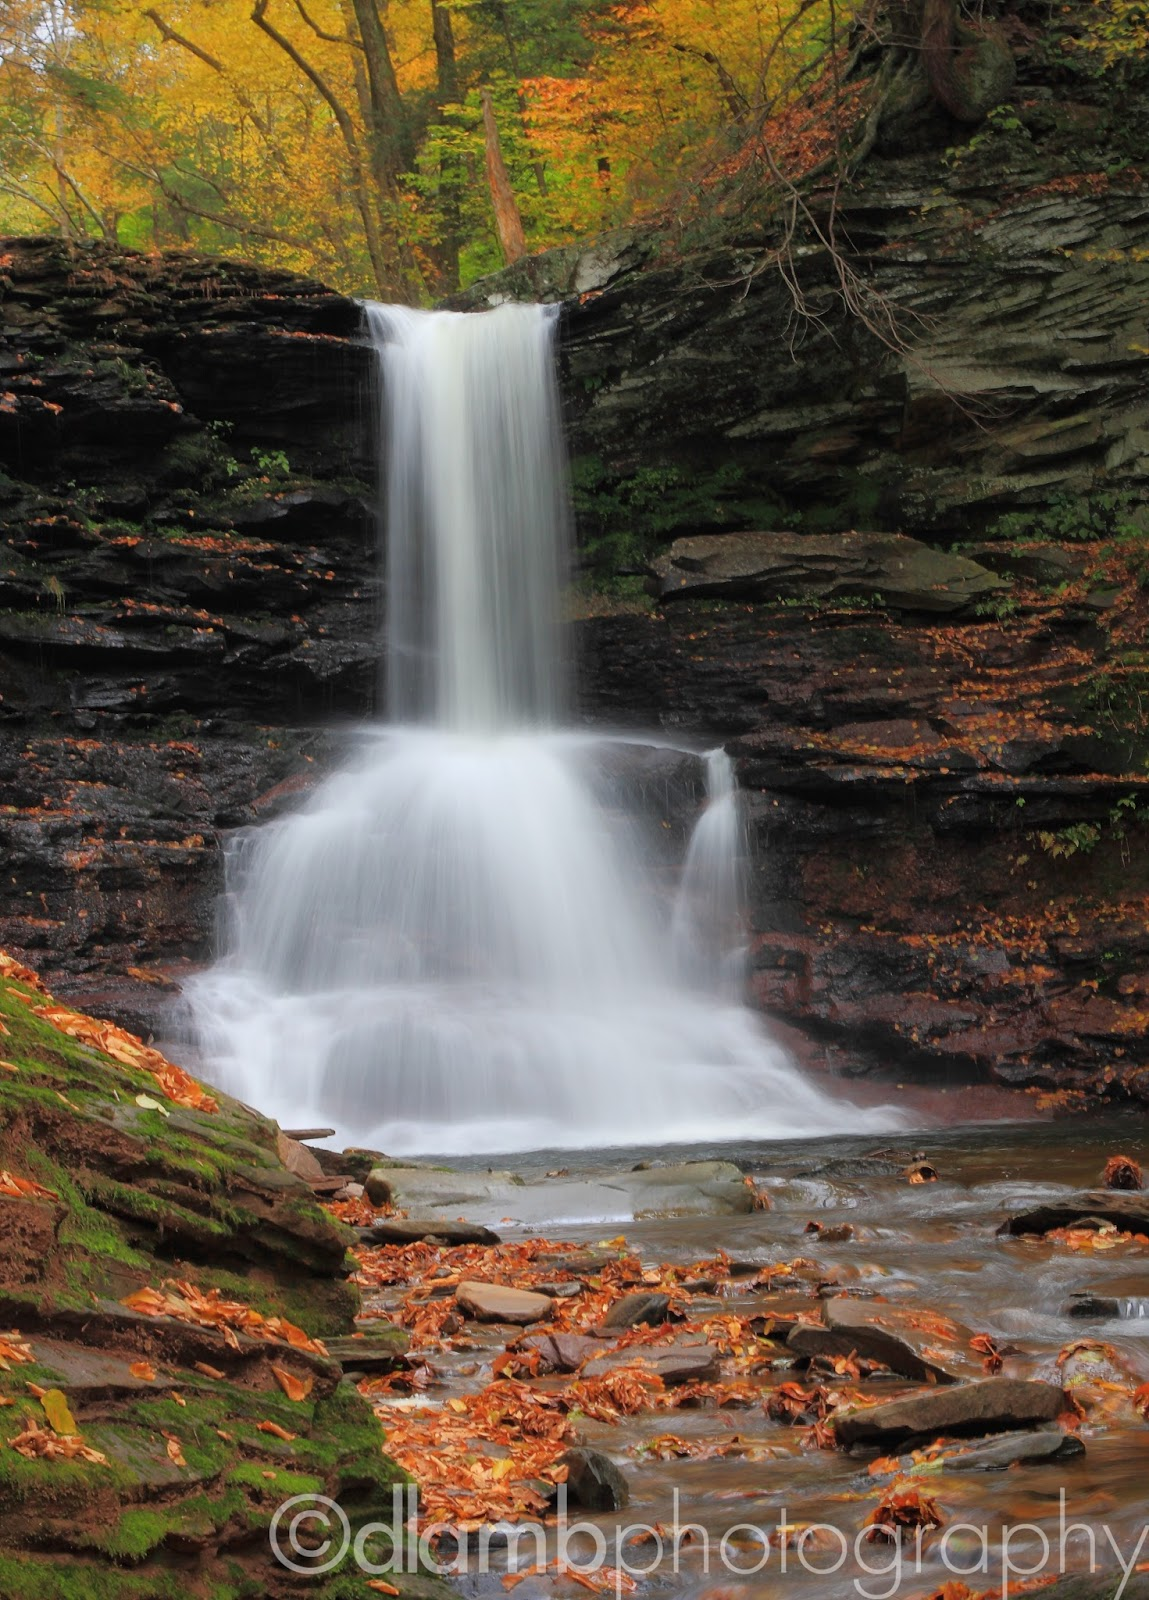 http://david-lamb.artistwebsites.com/featured/autumn-falls-david-lamb.html